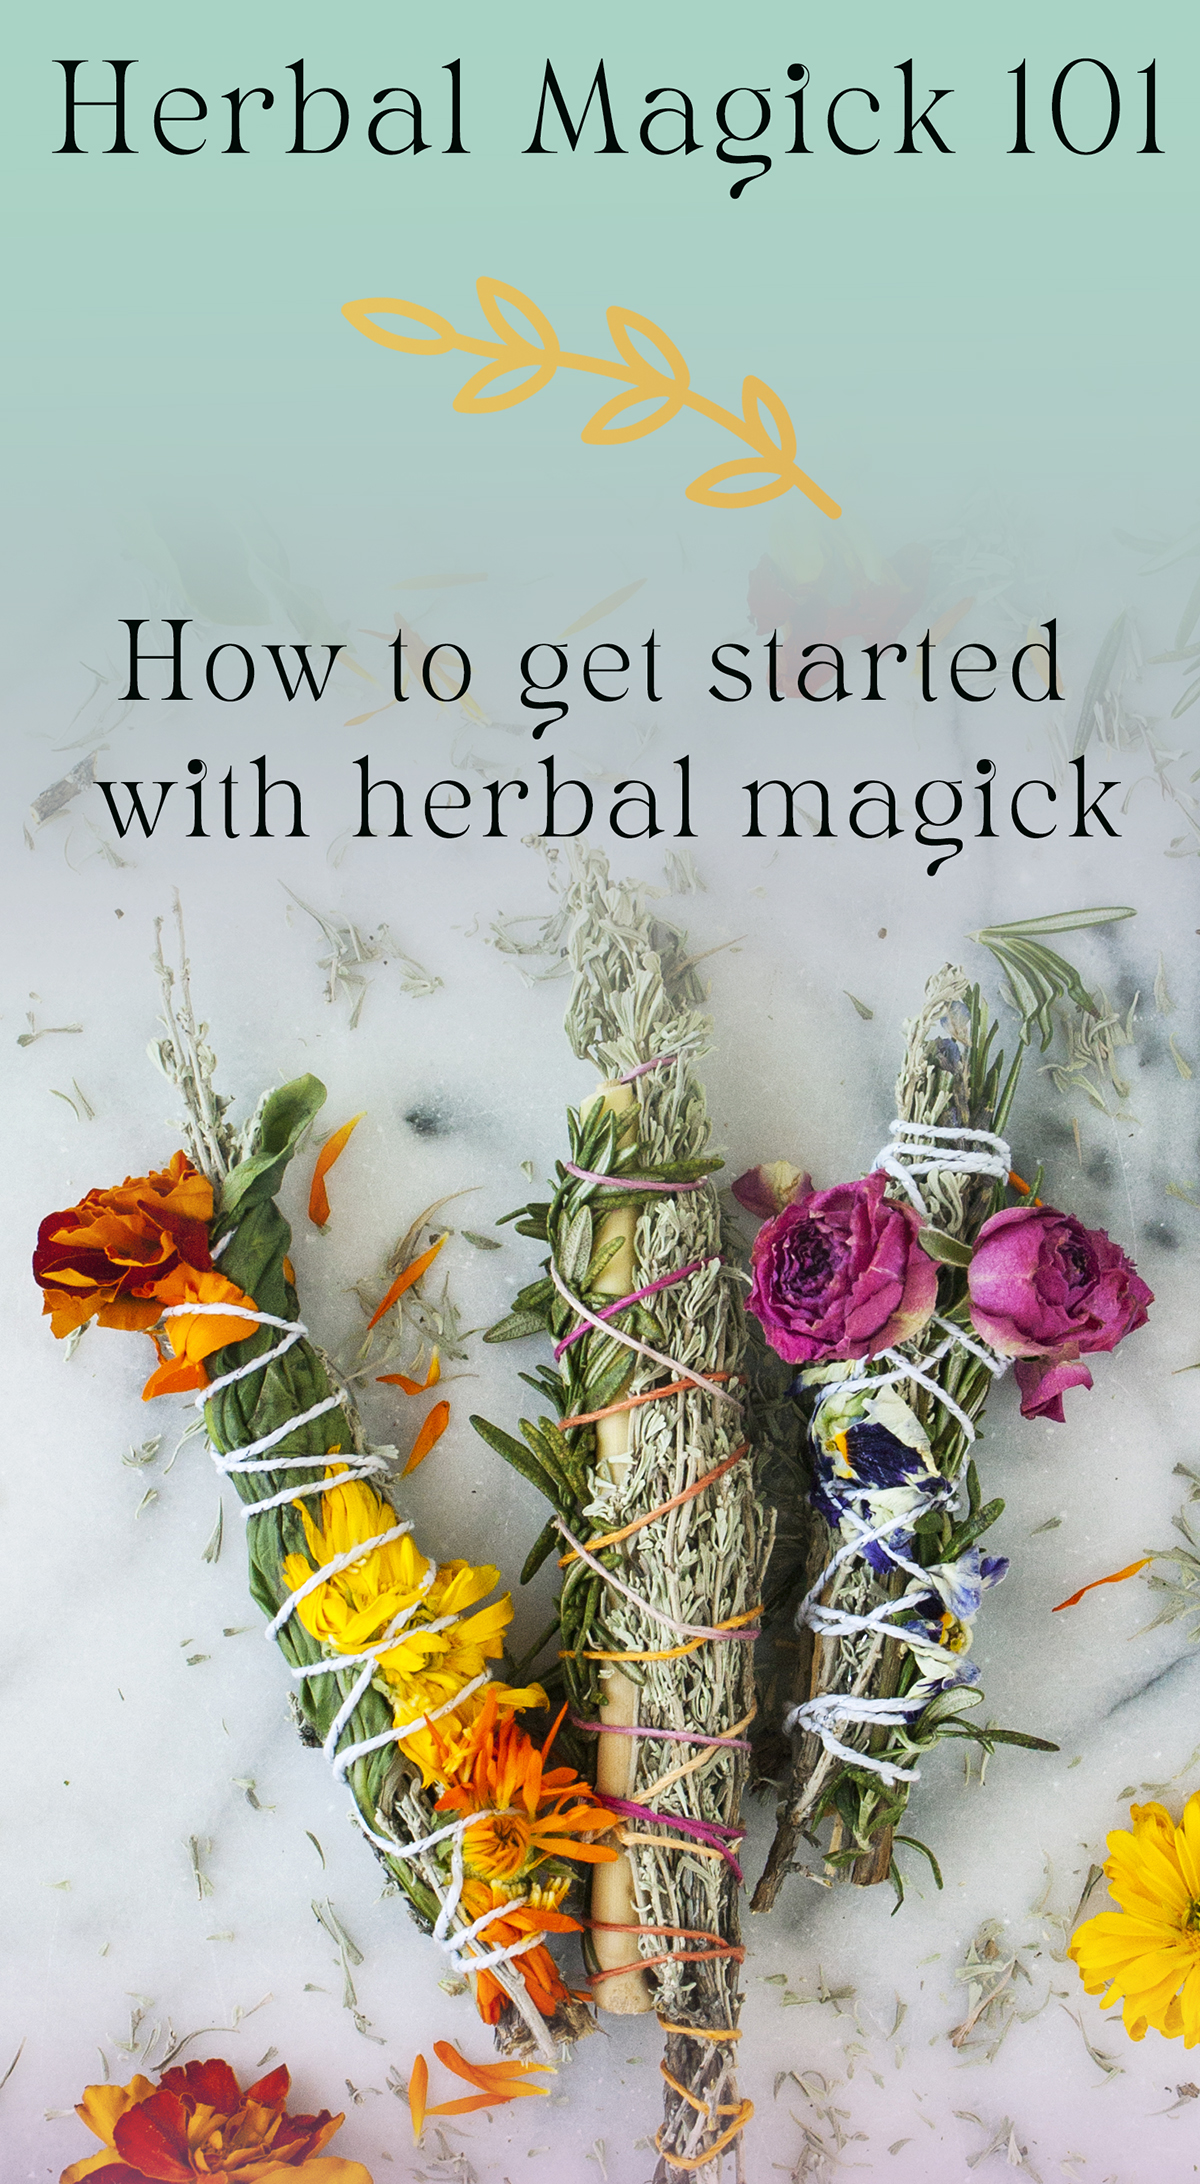 herbal magick 101 how to get started with herbal magick forming relationships with herbs